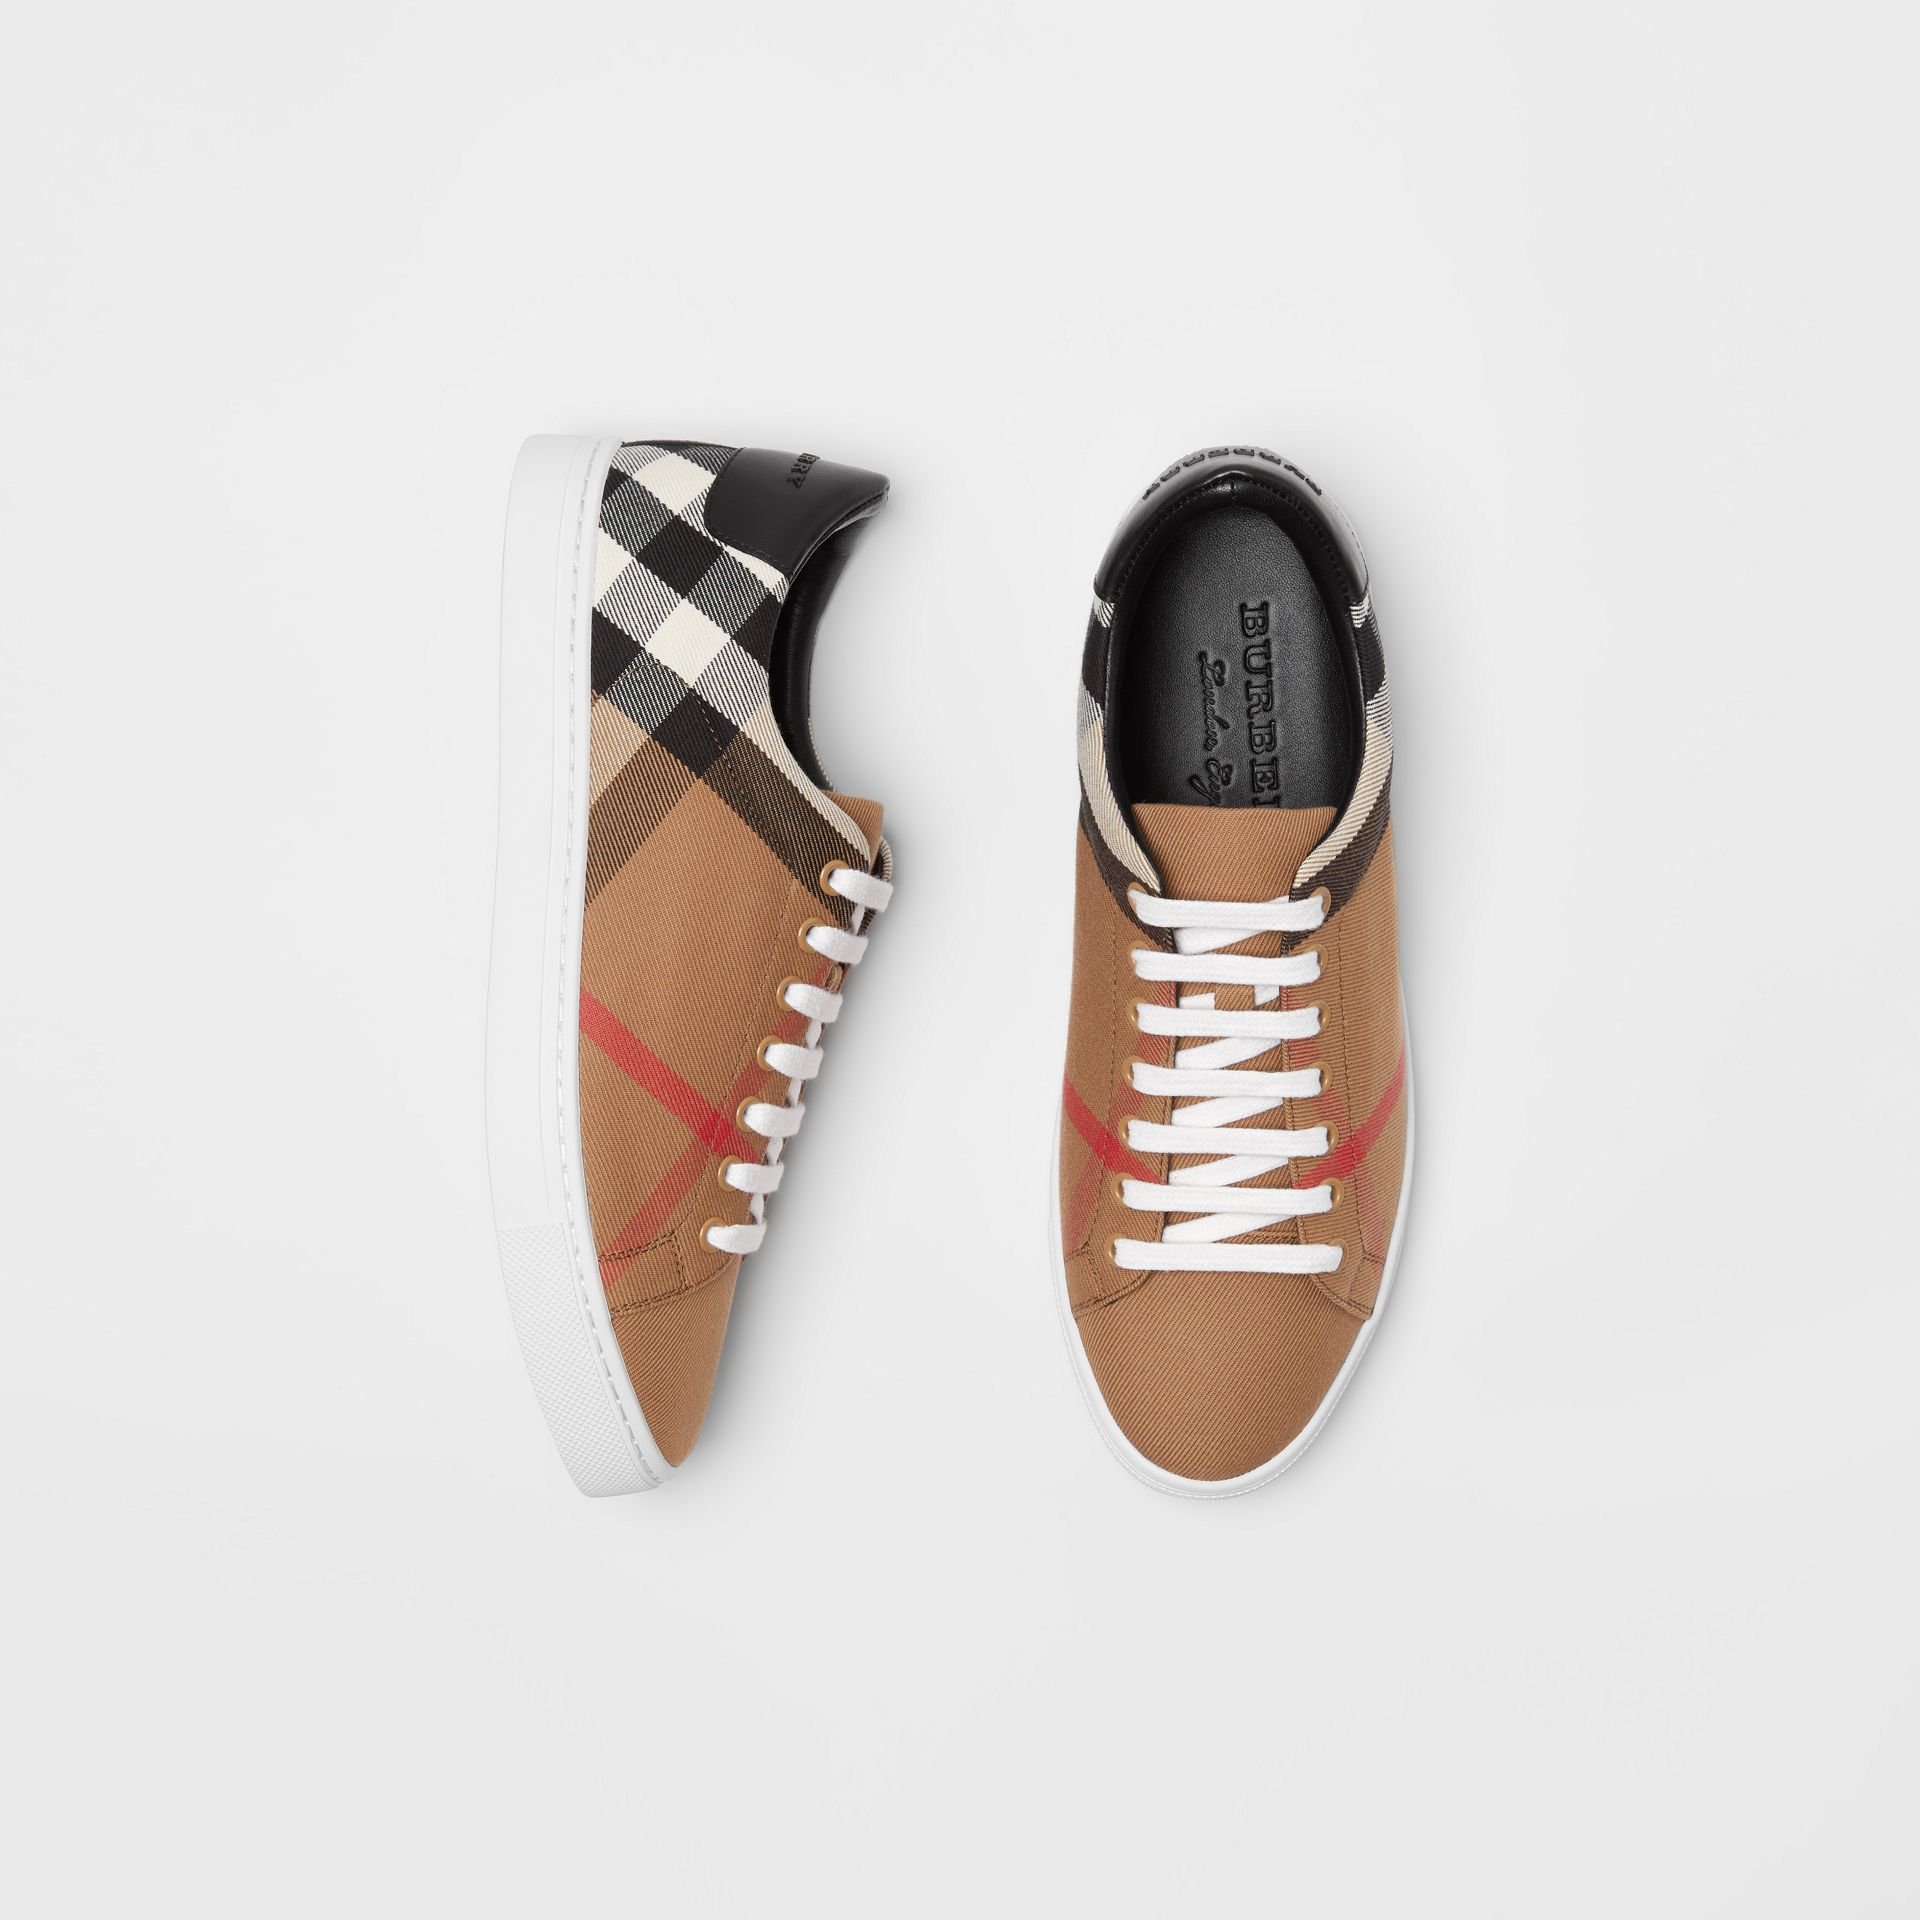 Sneakers en coton House check et cuir (Check/noir) - Homme | Burberry Canada - photo de la galerie 0